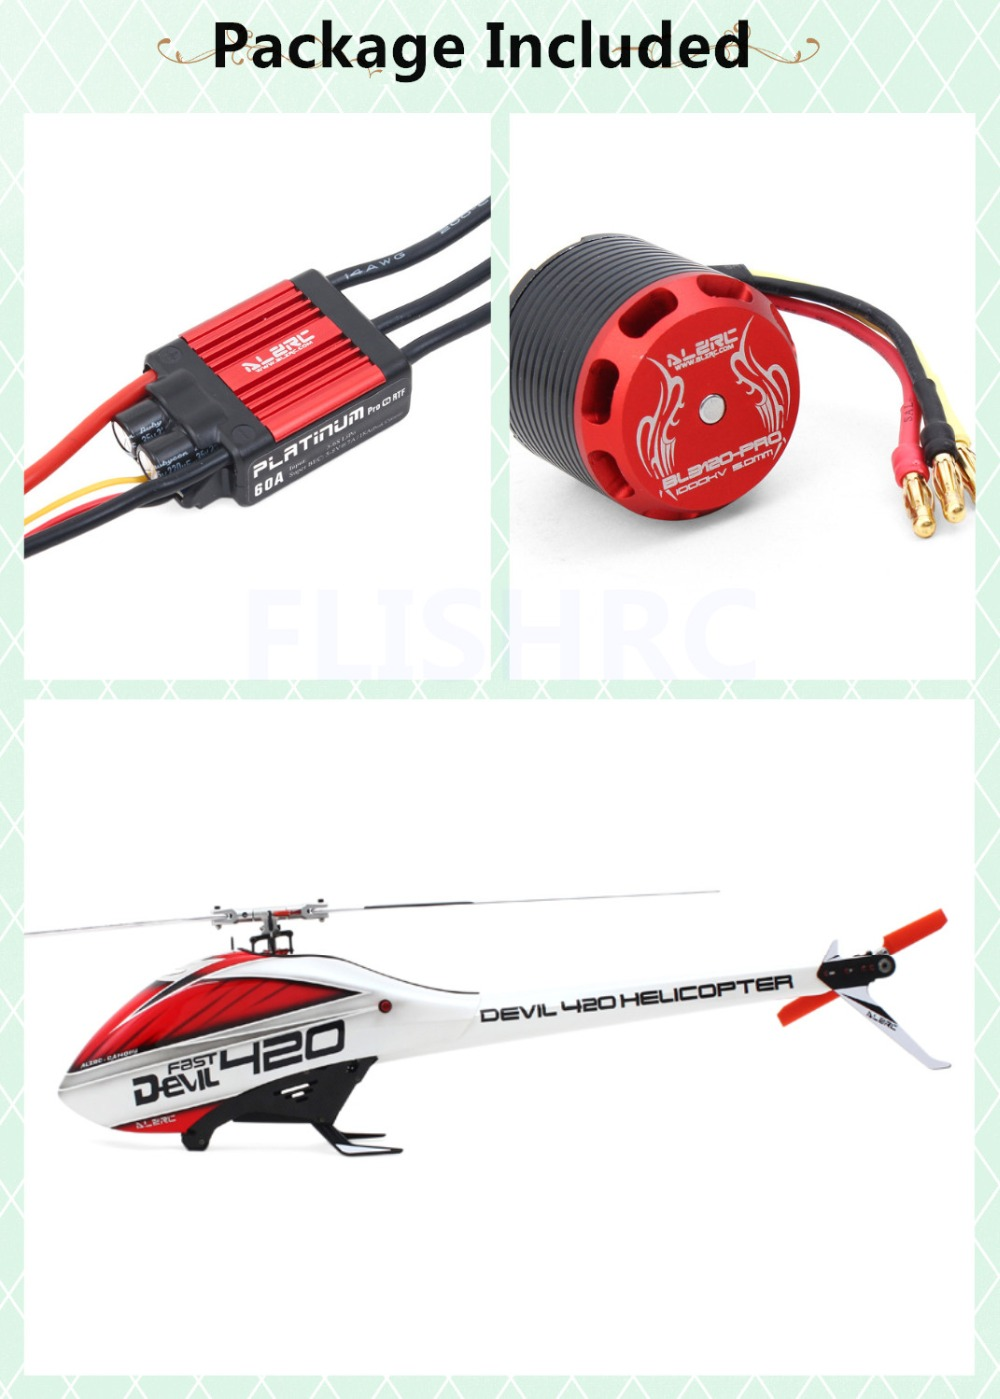 ALZRC - Devil 420 Helicopter 420 FAST FBL Combo (Included 60A-V4 Brushless ESC and BL3120 Motor ) - Silver - Standard цена